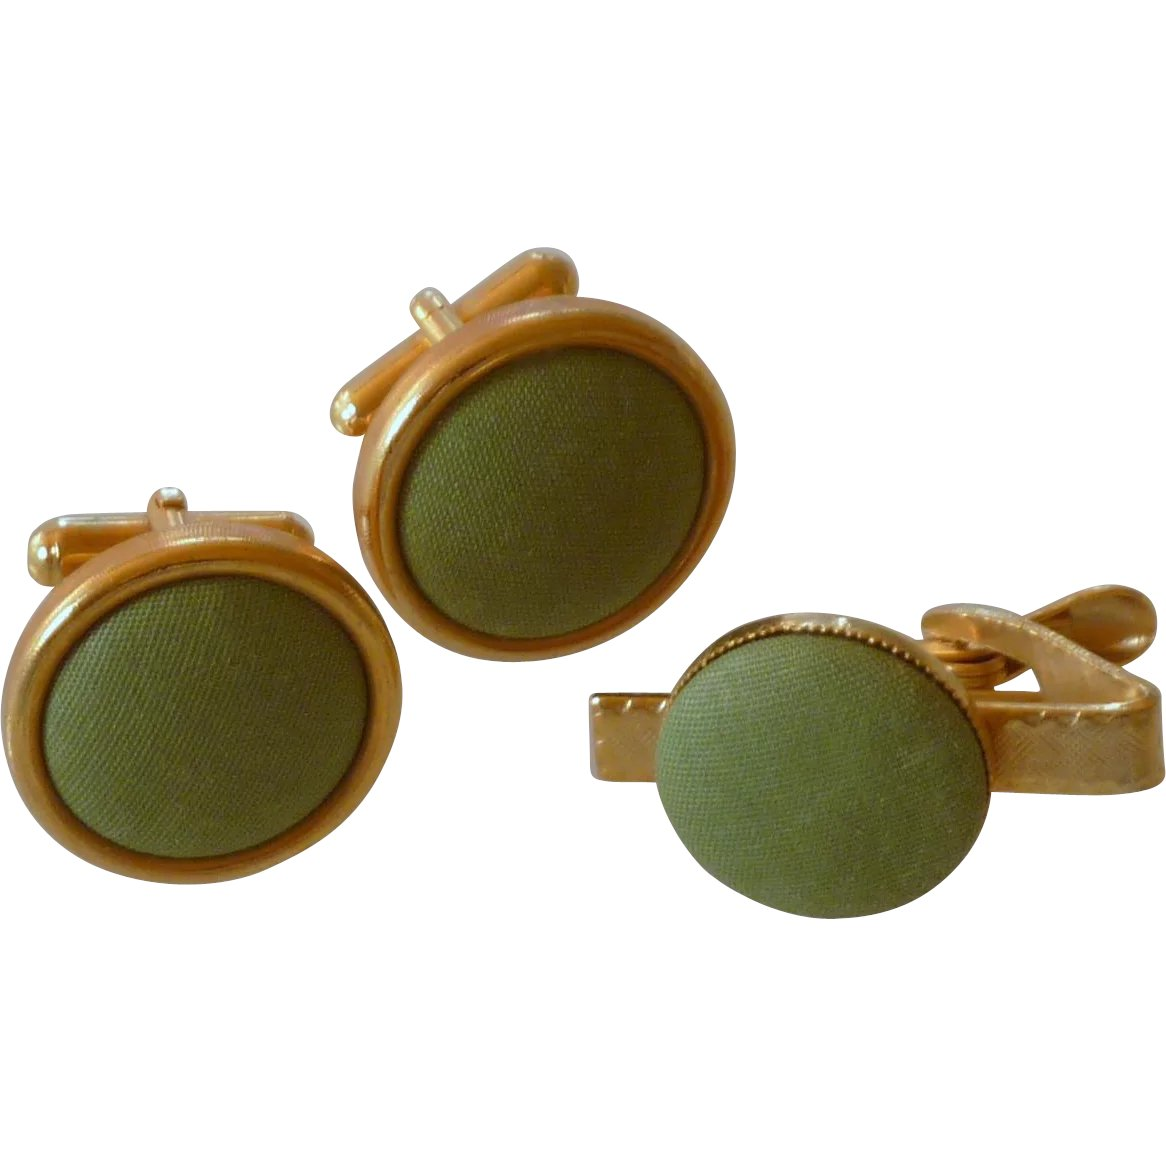 2dbd535e93da Apple Green Cloth Cufflinks Cuff Links & Tie Clasp : Dobie's Delights |  Ruby Lane